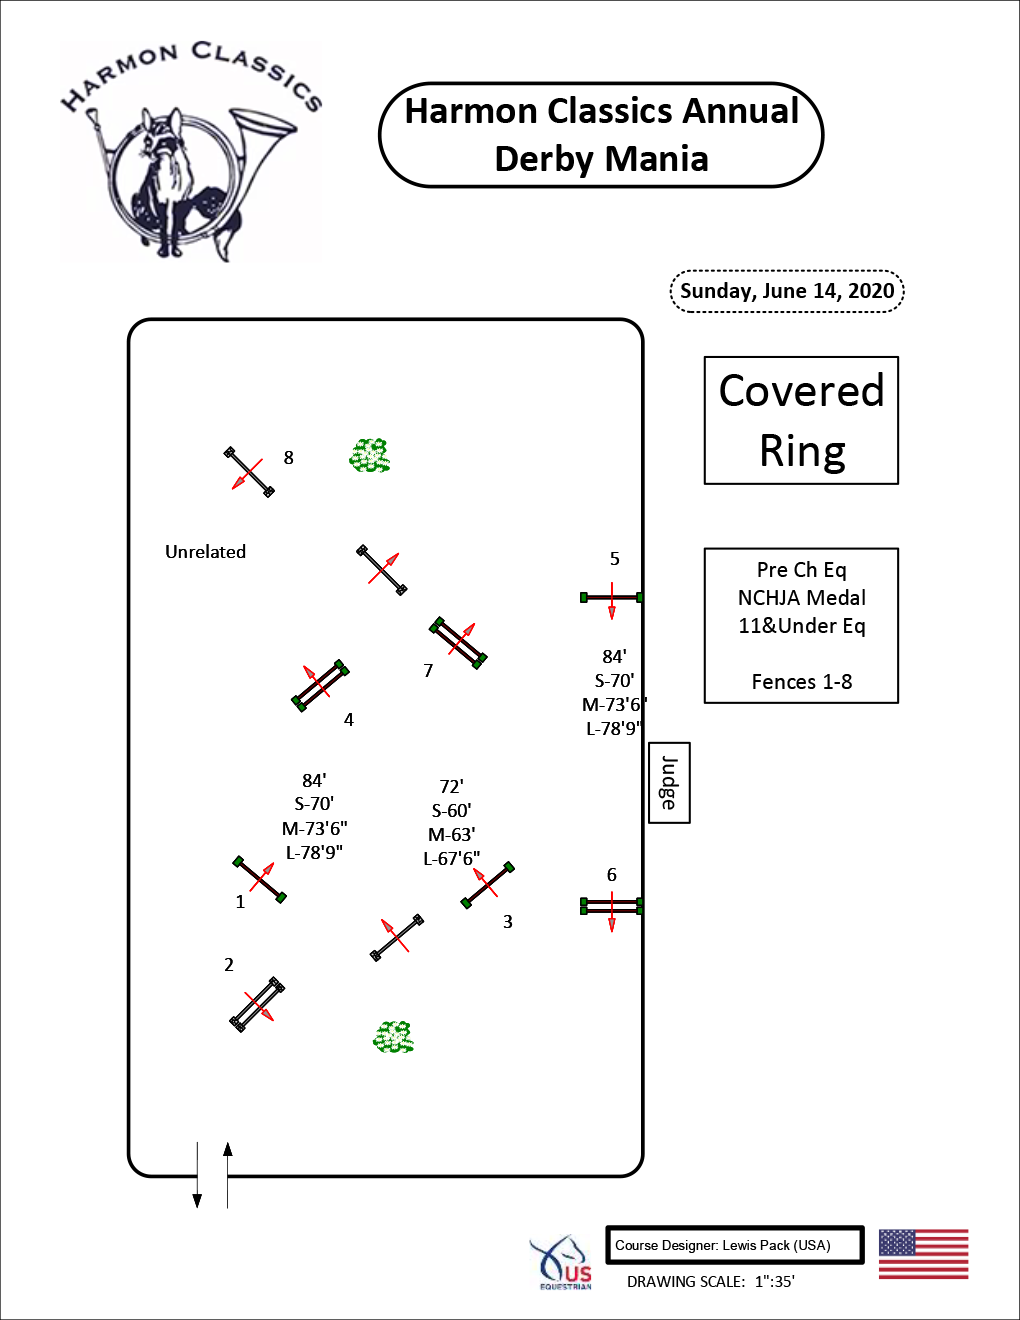 Covered-Arena-Sunday6-14-Pre-Child-Eq-NCHJA-Medal-11-and-Under-Eq-Harmon-Classics-Derby-Mania